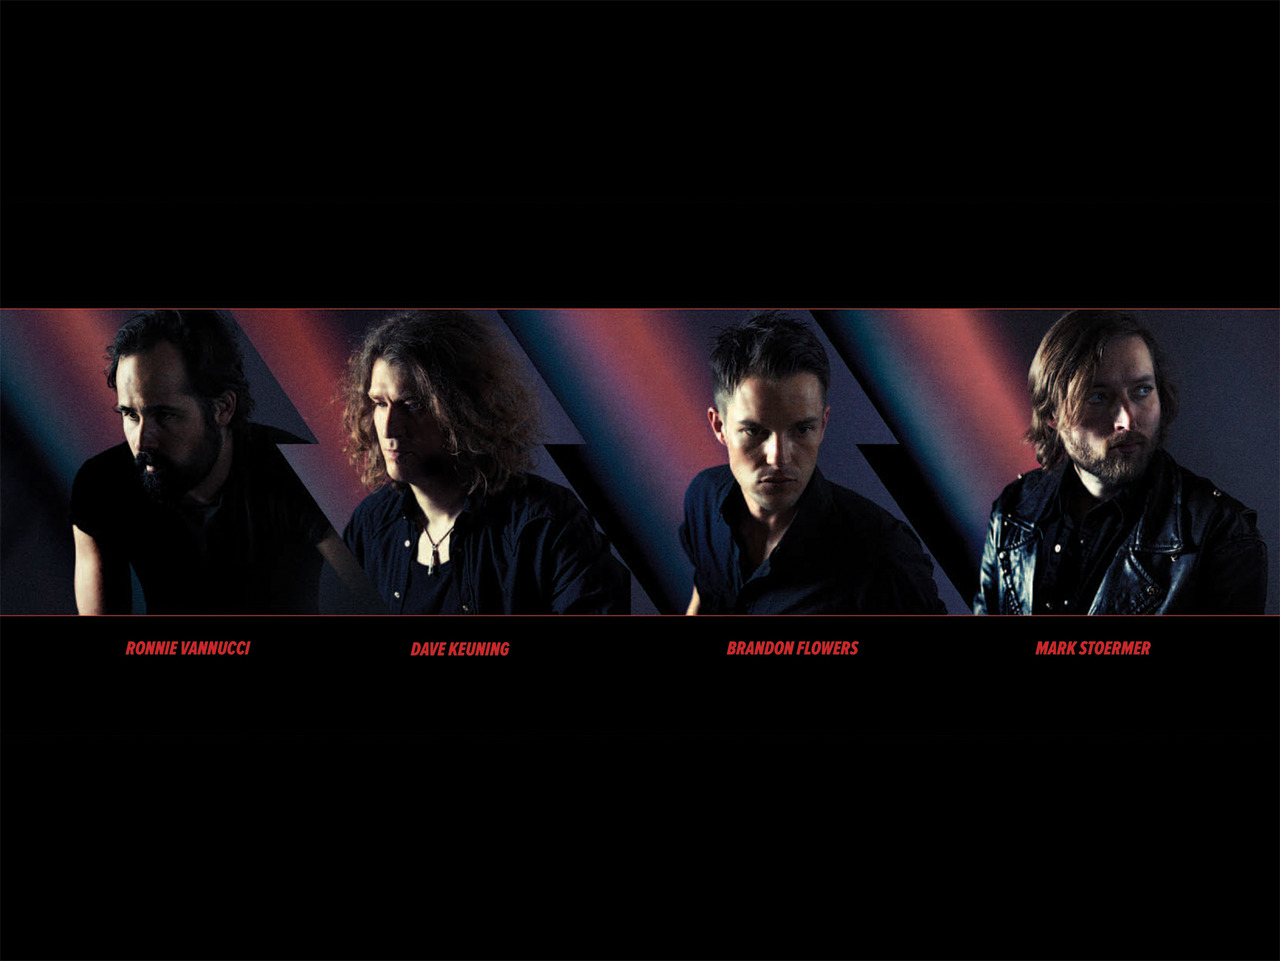 Battle-Born-CD-booklet-the-killers.jpg